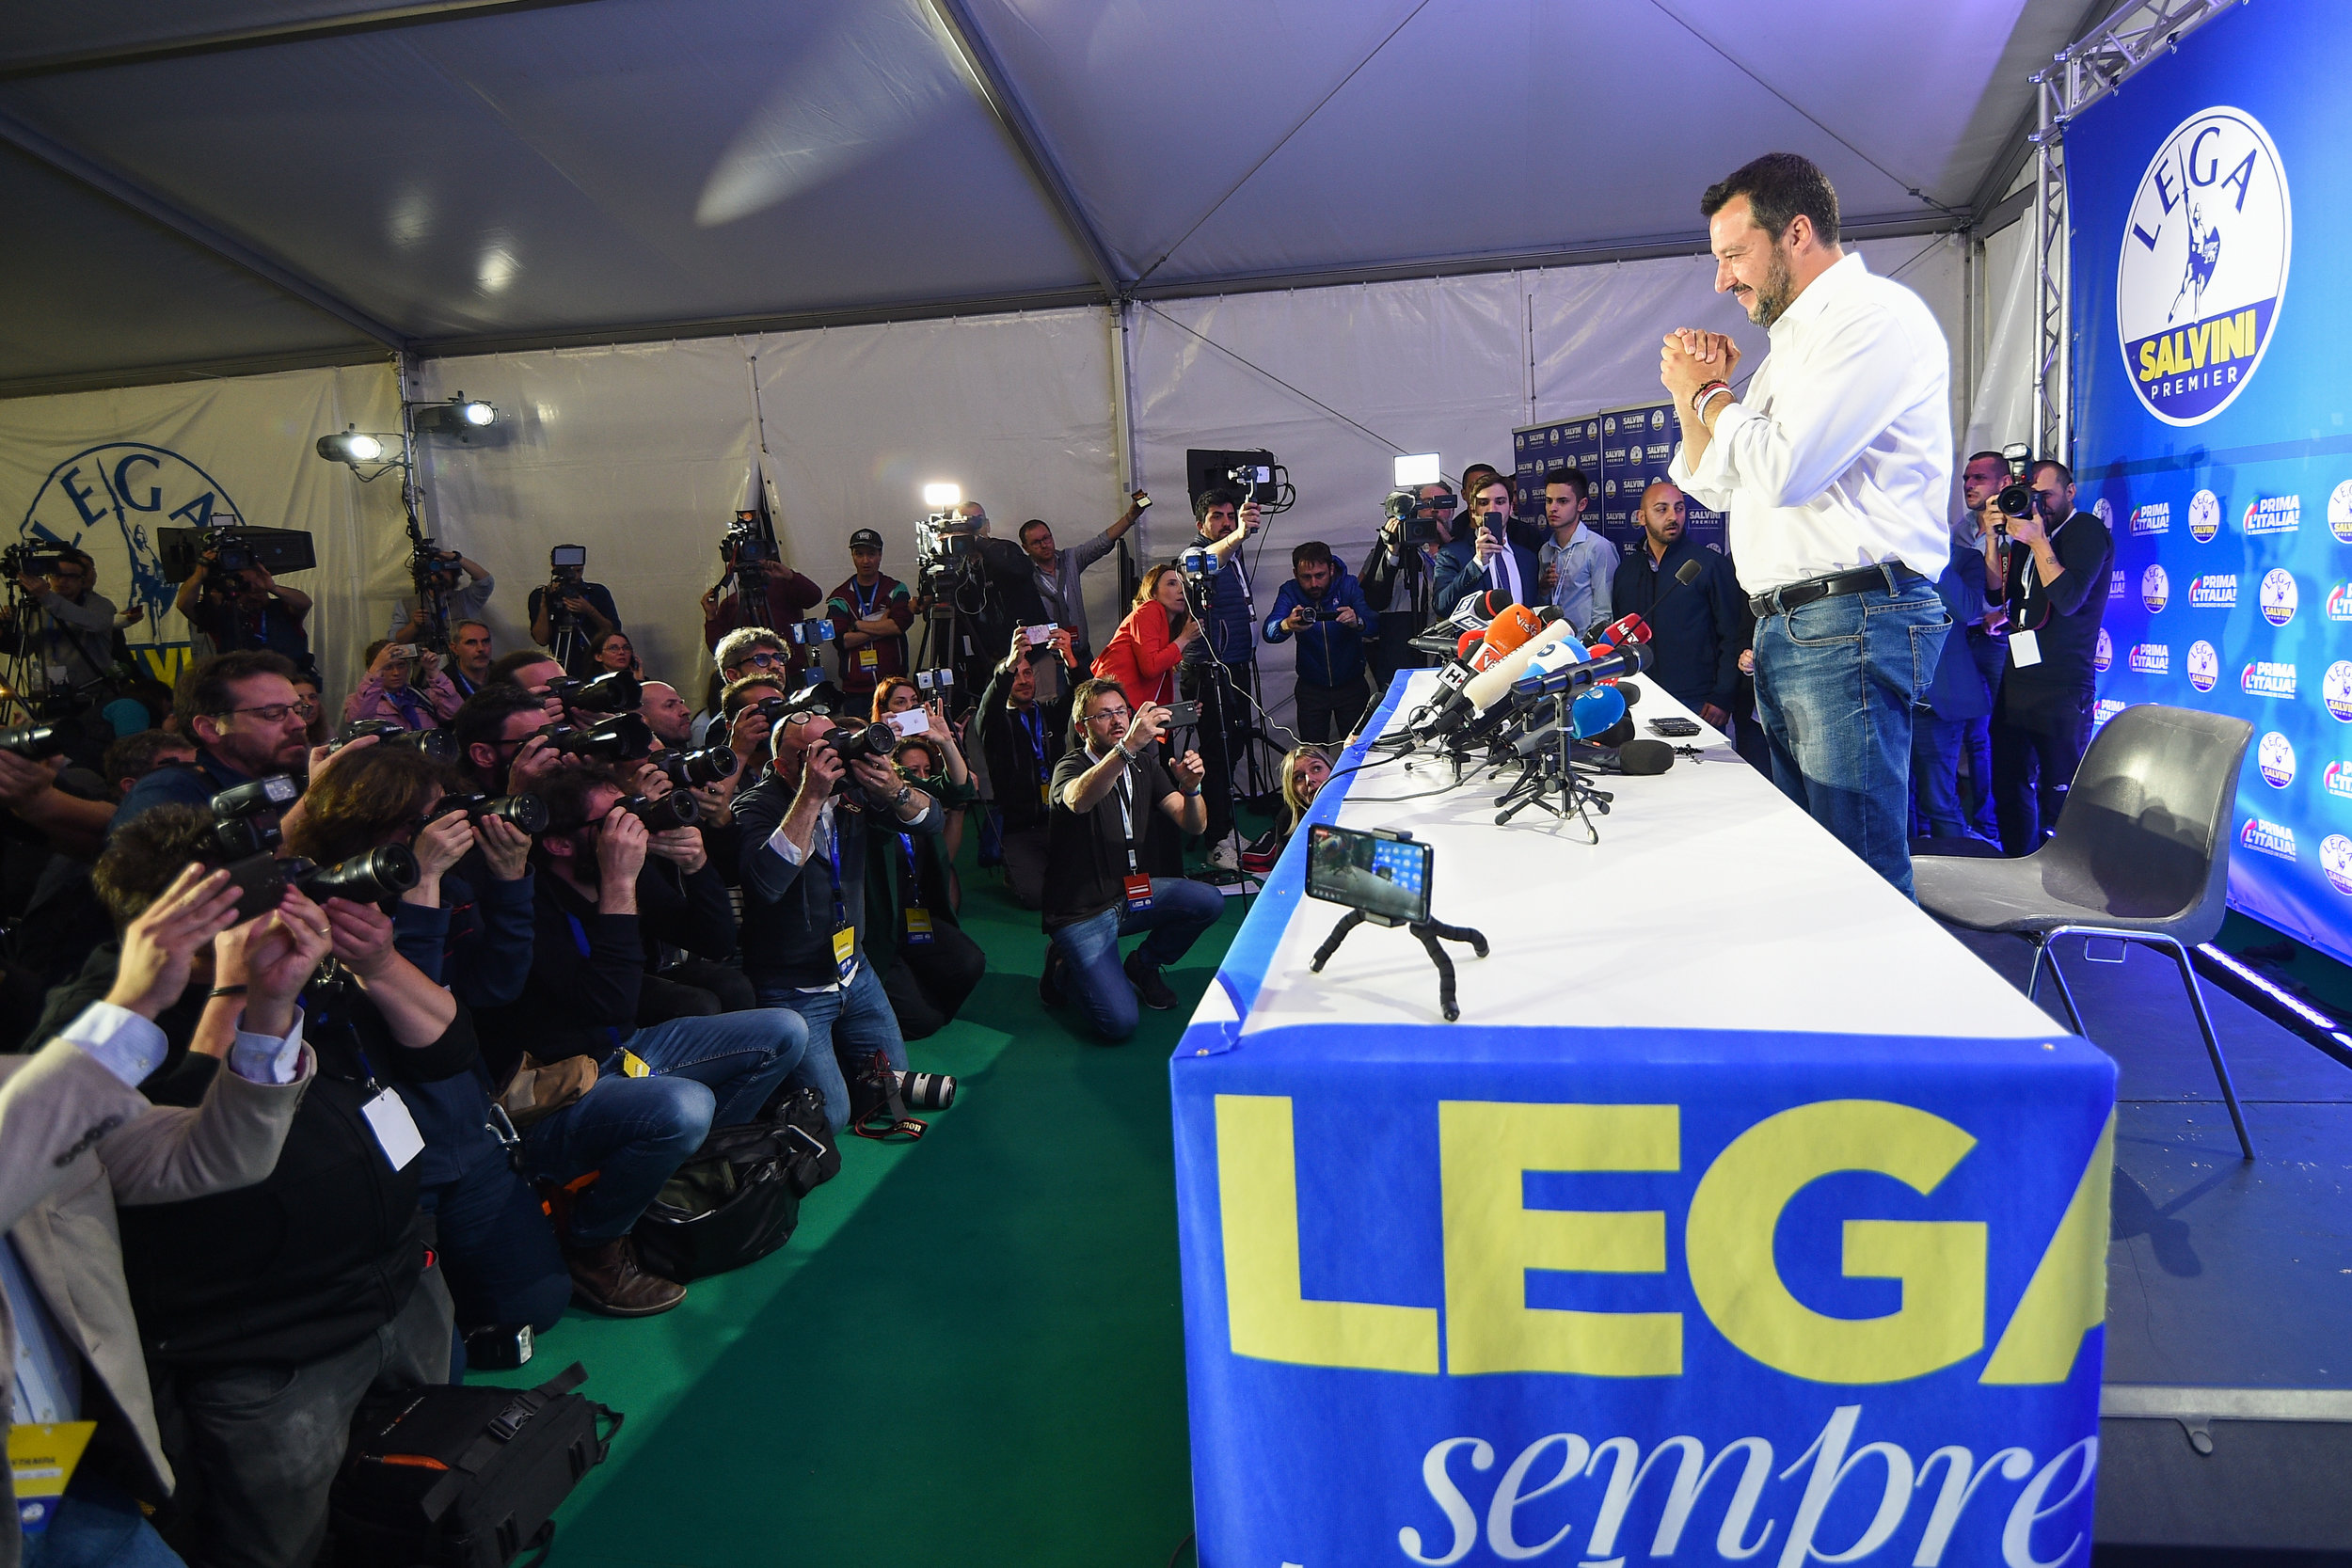 Italian Deputy Prime Minister and leader of far-right League party Matteo Salvini gestures during his European Parliament election night event in Milan, Italy, May 27, 2019.